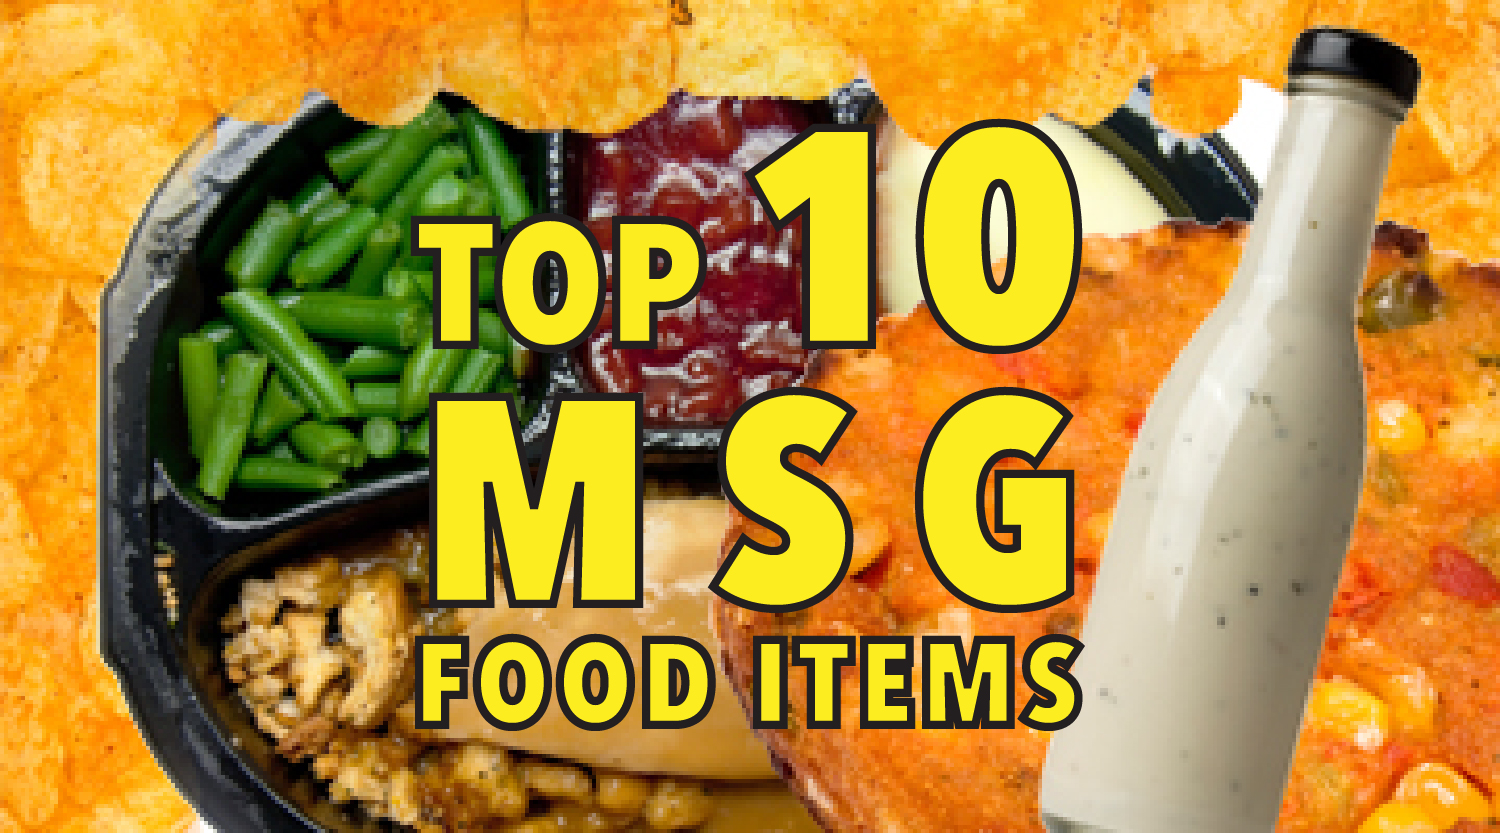 Top 10 MSG food items